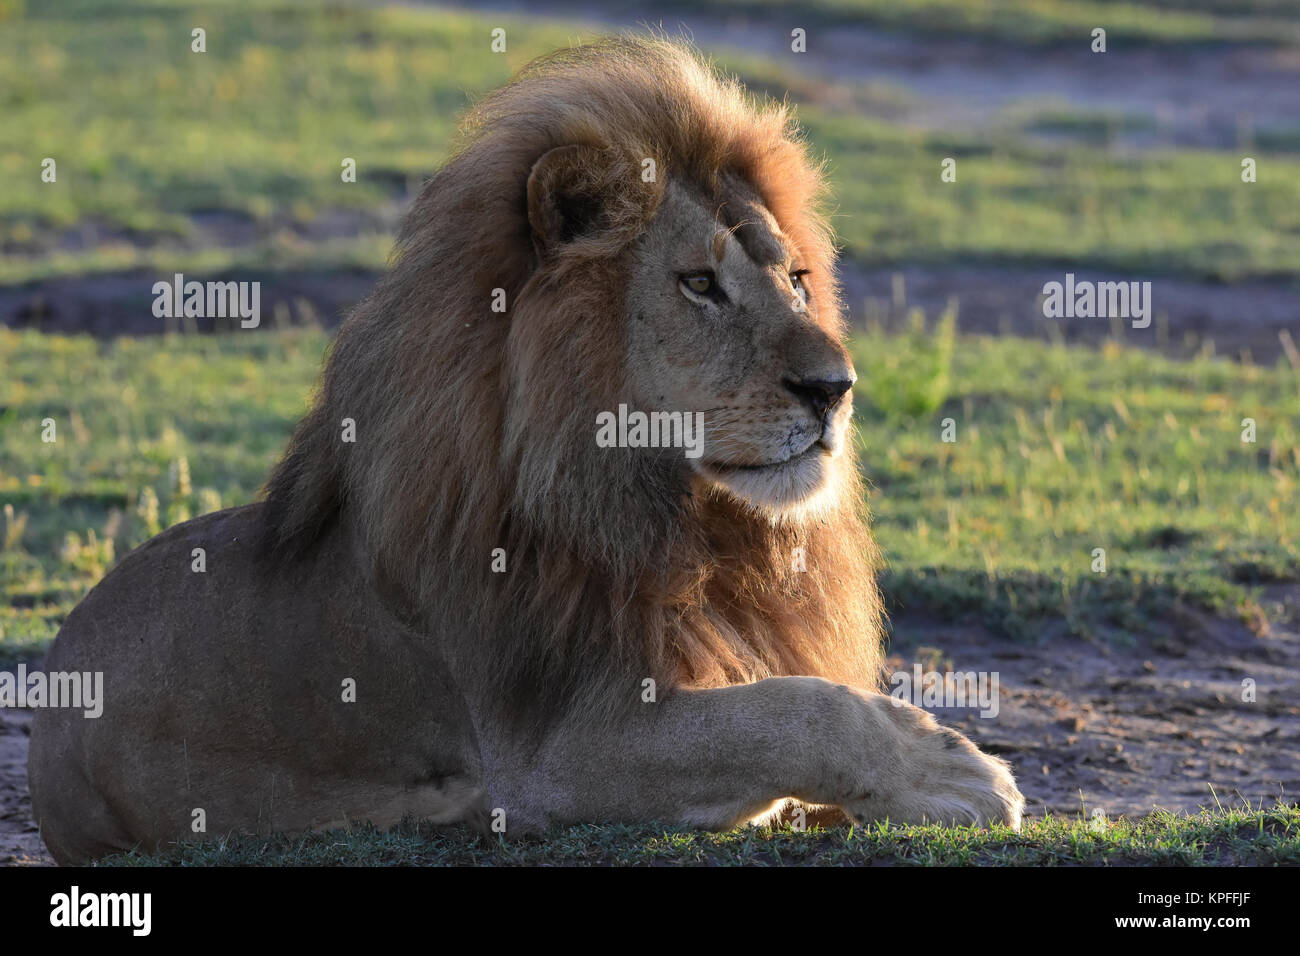 Wildlife sightseeing in one of the prime wildlife destinations on earht -- Serengeti, Tanzania. Handsome male lion - Stock Image